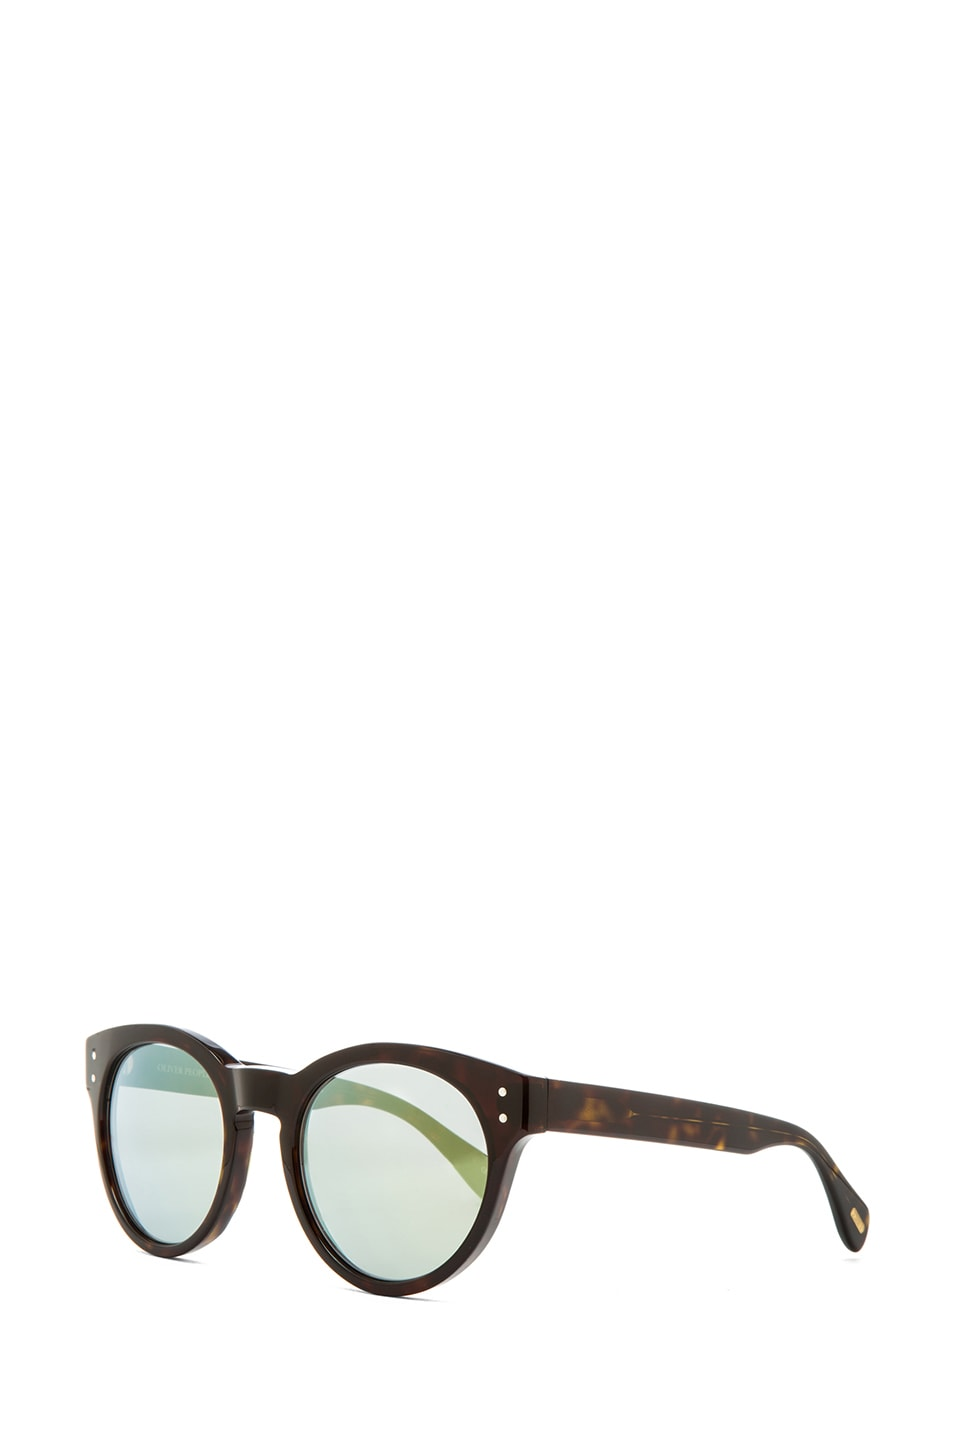 Image 2 of Oliver Peoples for Maison Kitsune Paris Sunglasses in Dark Tortoise